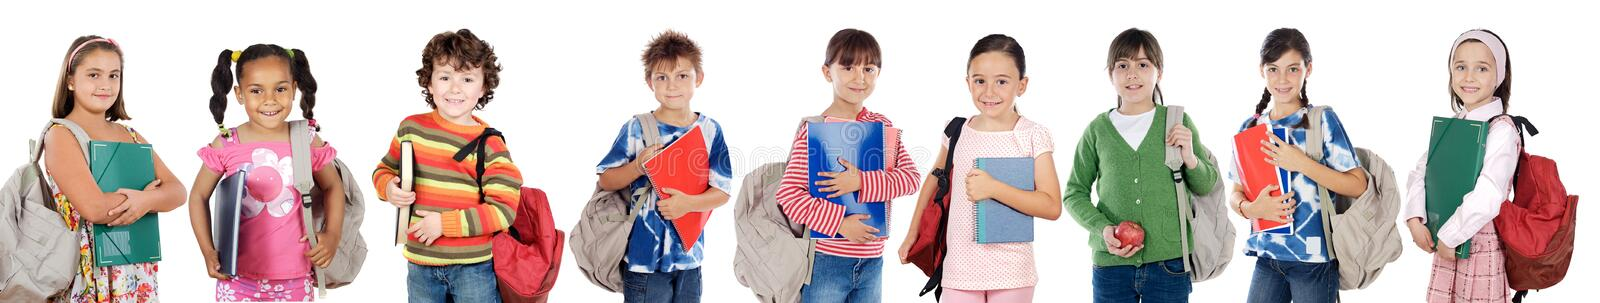 Download Many Children Students Returning To School Stock Image - Image: 6699879